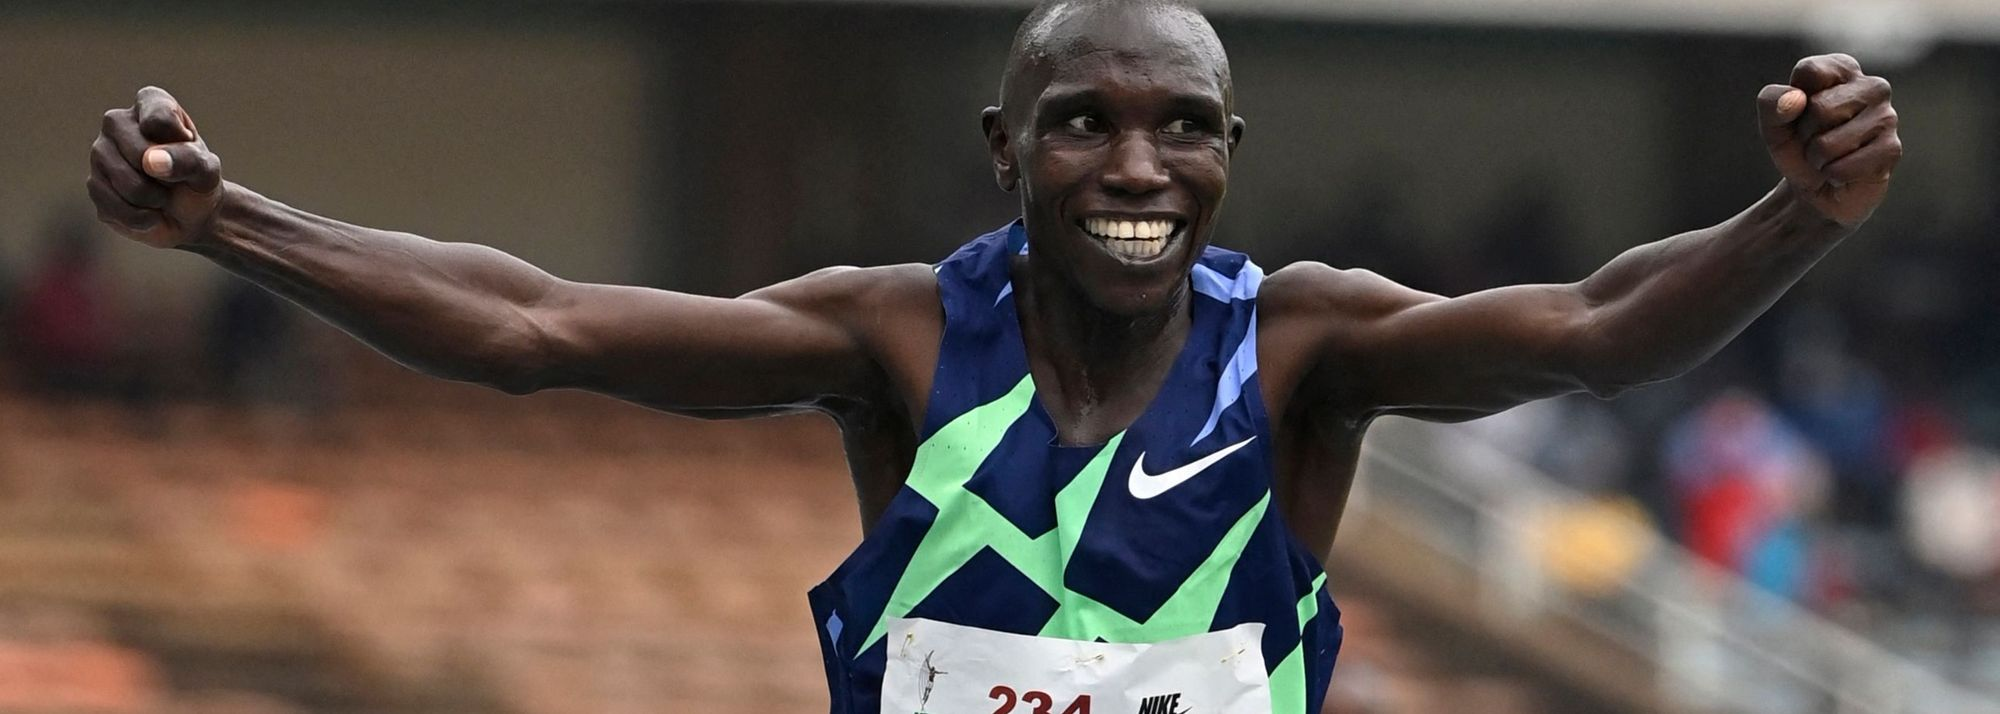 Geoffrey Kamworor ran the quickest 10,000m time ever recorded in Kenya on Friday (18), clocking an all-comers' record of 27:01.06 at the Kenyan Championships in Nairobi to secure his Olympic team place for Tokyo.